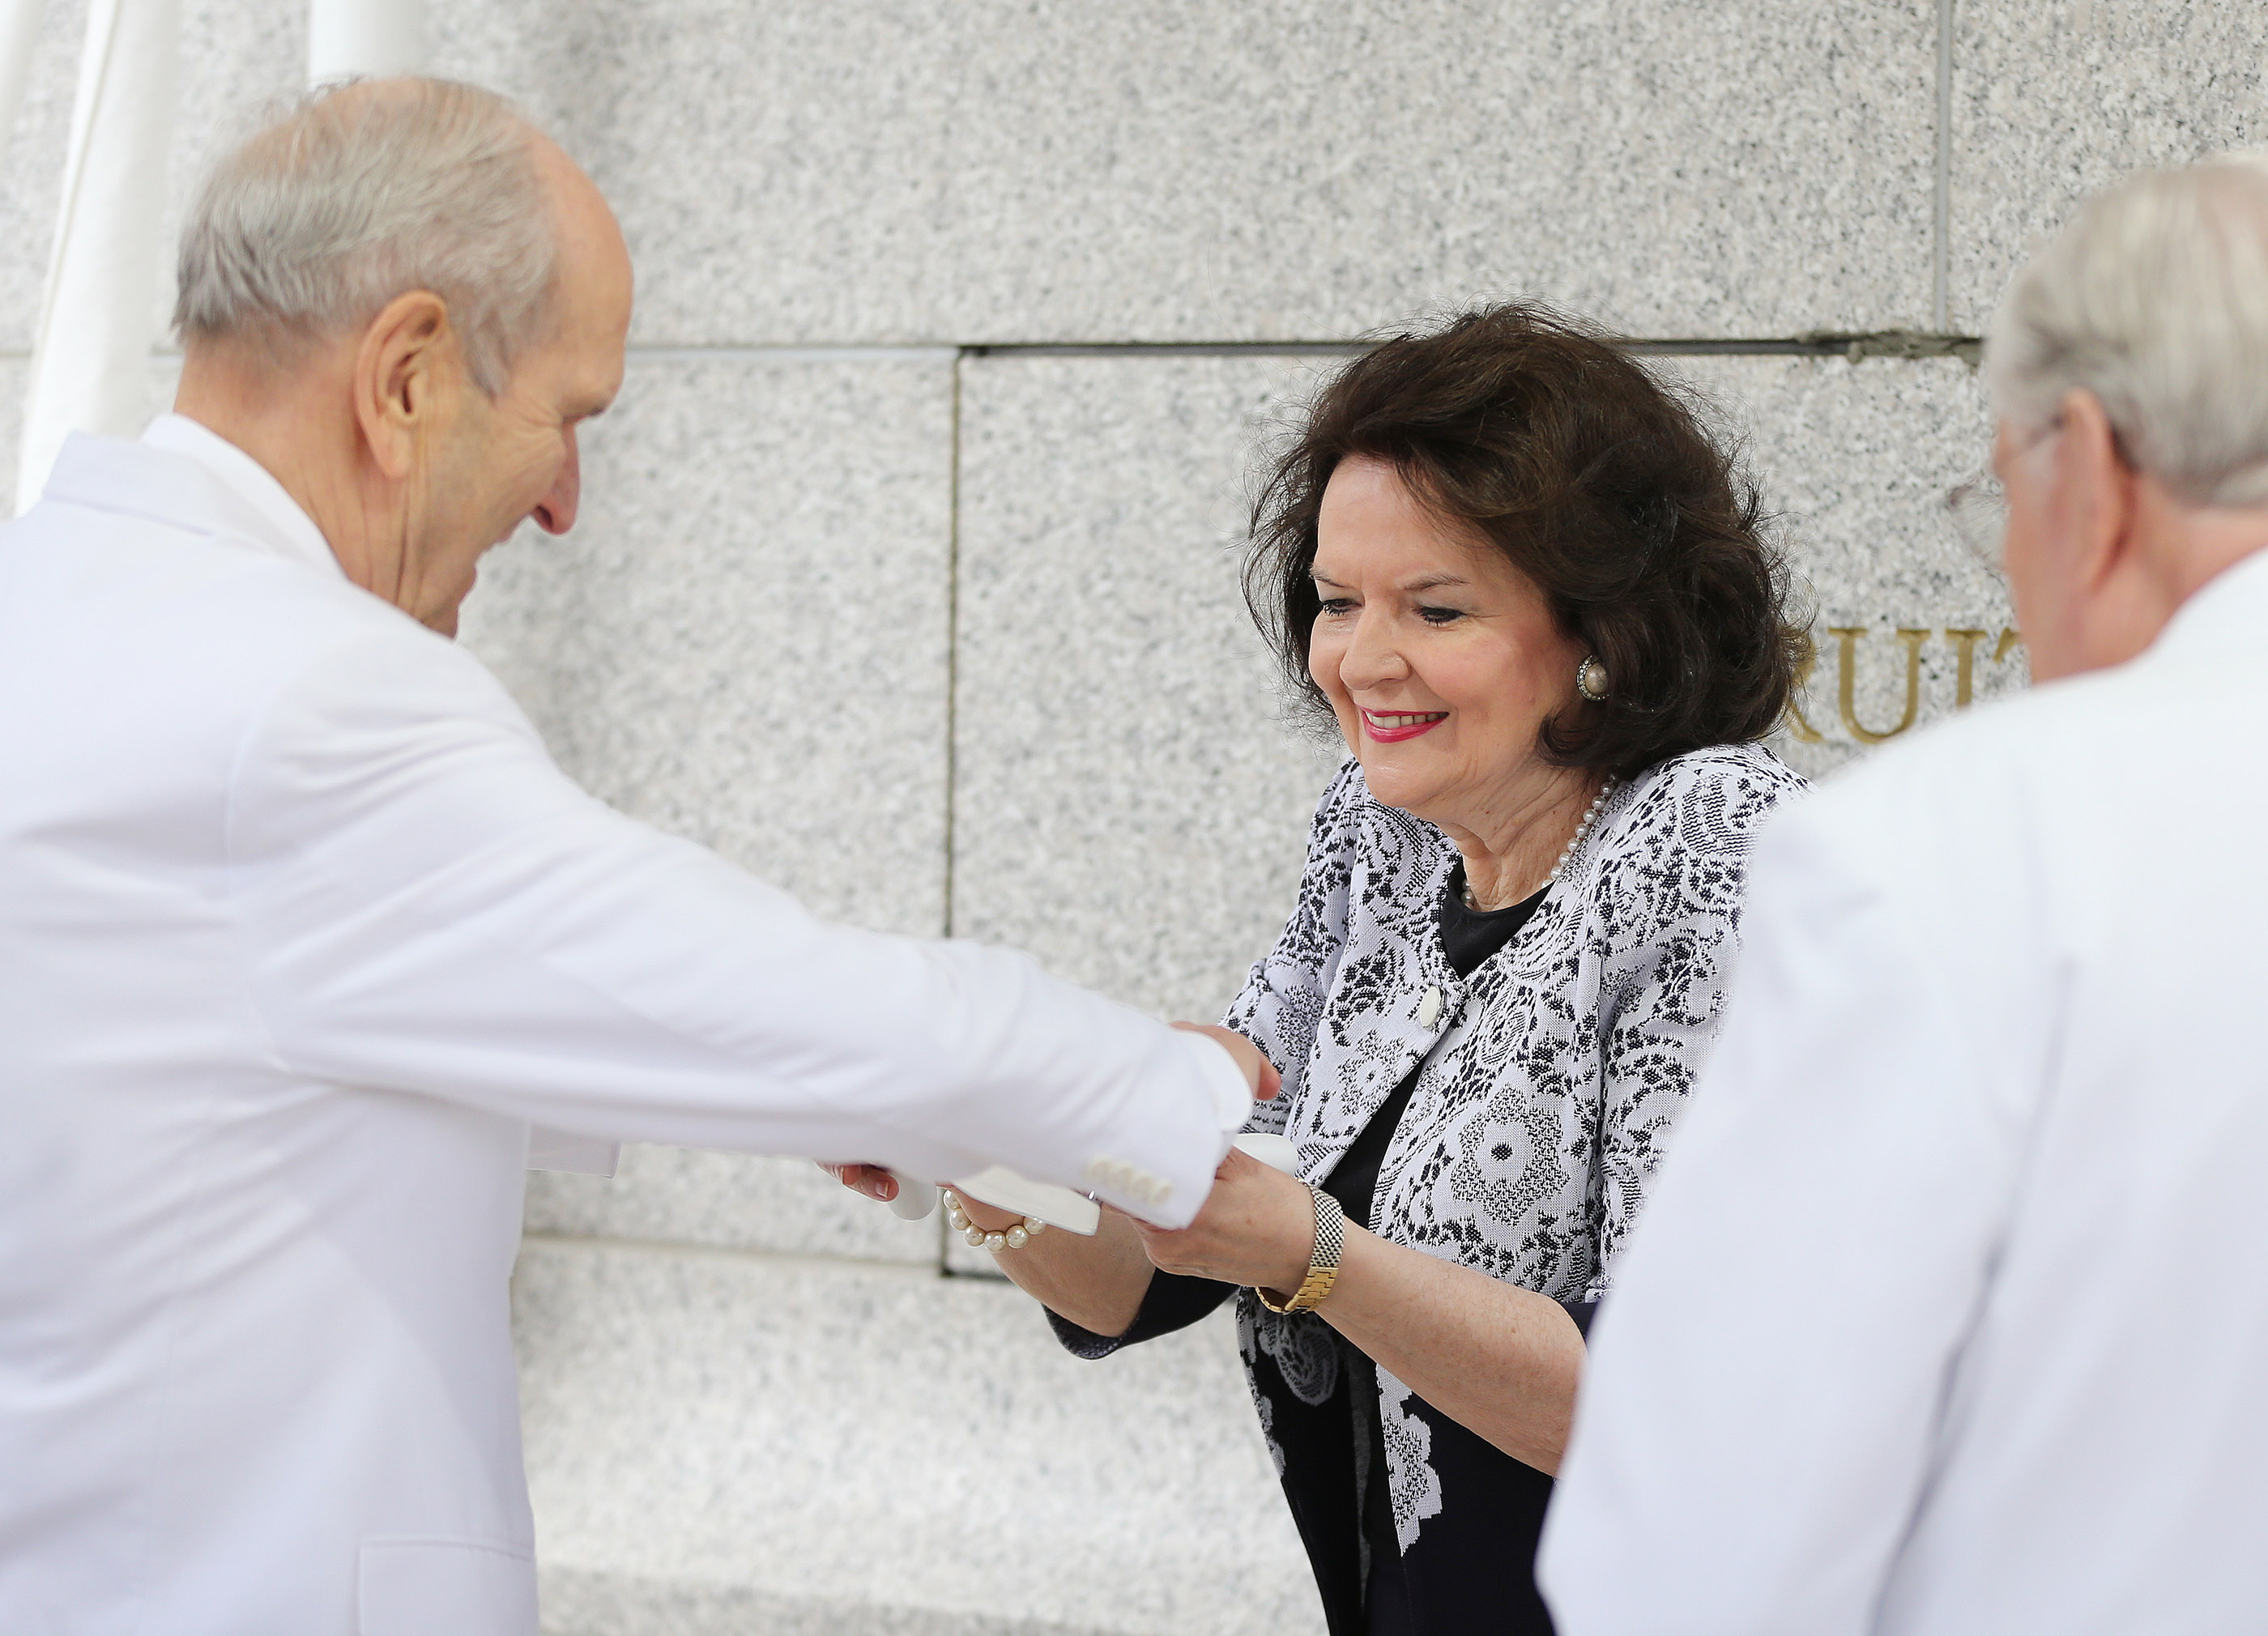 President Russell M. Nelson of The Church of Jesus Christ of Latter-day Saints and his wife, Sister Wendy Nelson, place mortar during the cornerstone ceremony of the dedication of the Rome Italy Temple of The Church of Jesus Christ of Latter-day Saints in Rome, Italy, on Sunday, March 10, 2019.